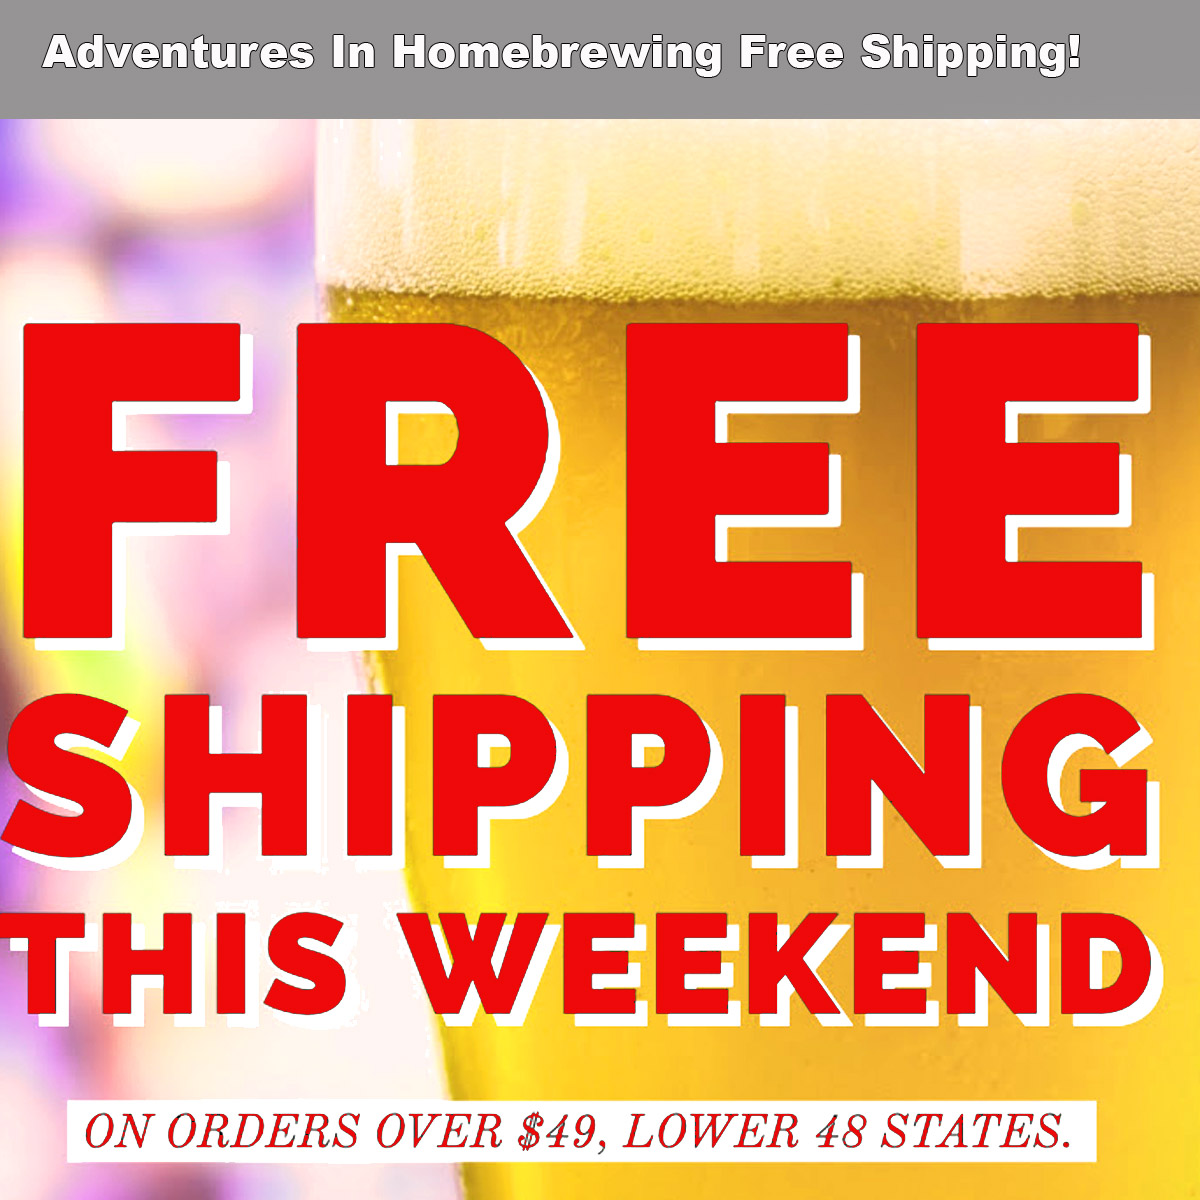 Home Wine Making Coupon Codes for Adventures In Homebrewing Free Shipping Promotion Homebrewing.org Coupon Code